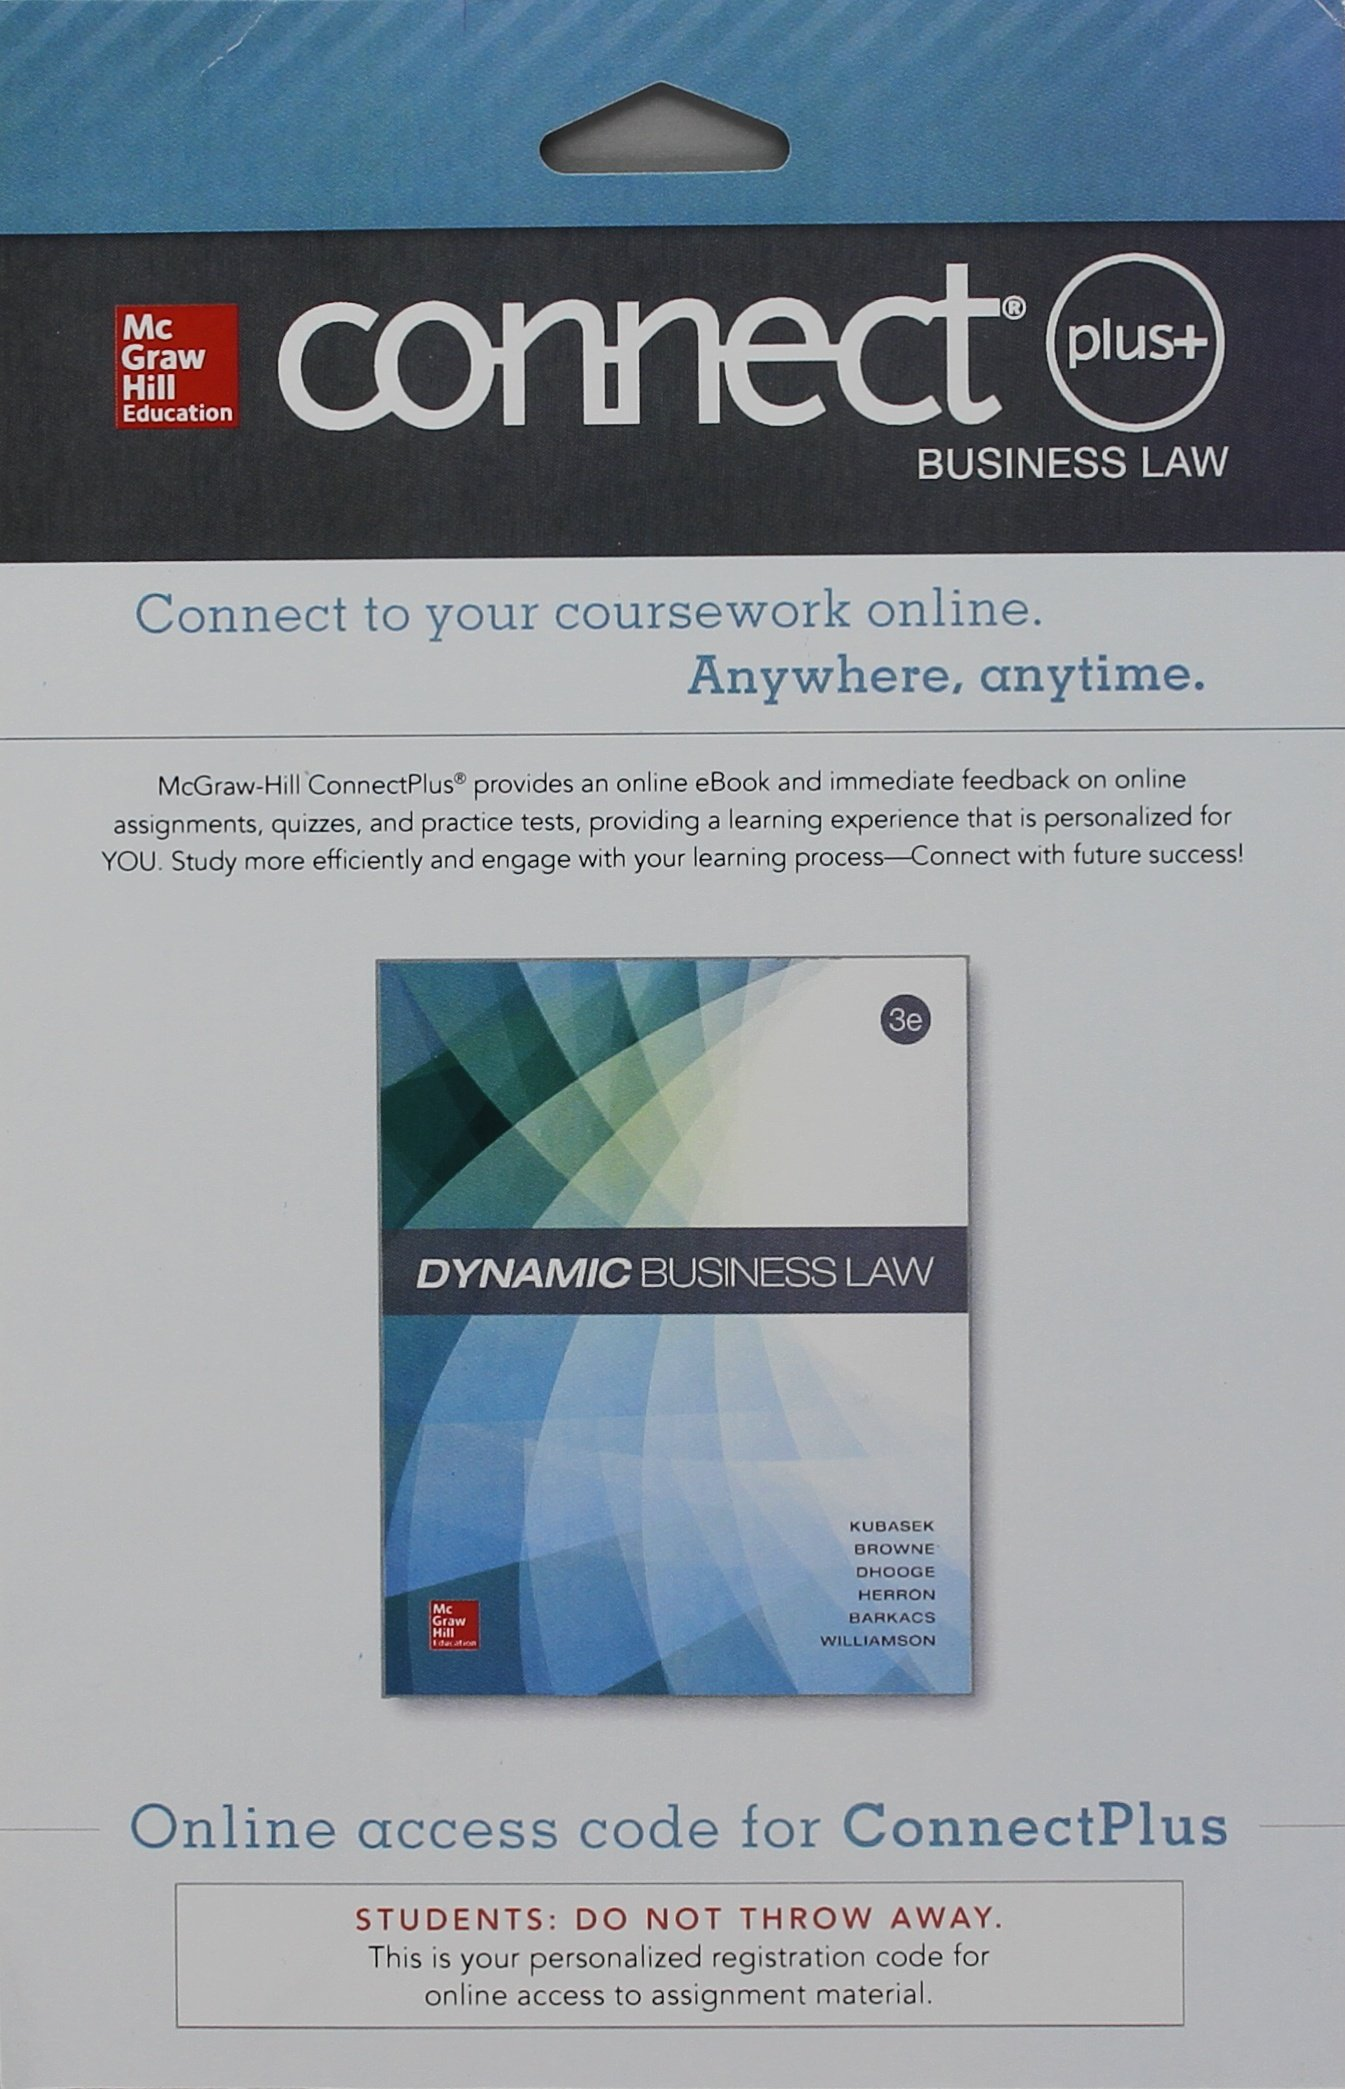 Dynamic business law connectplus access browne dhooge herron dynamic business law connectplus access browne dhooge herron barkacs williamson kubasek 9780077618346 amazon books fandeluxe Gallery